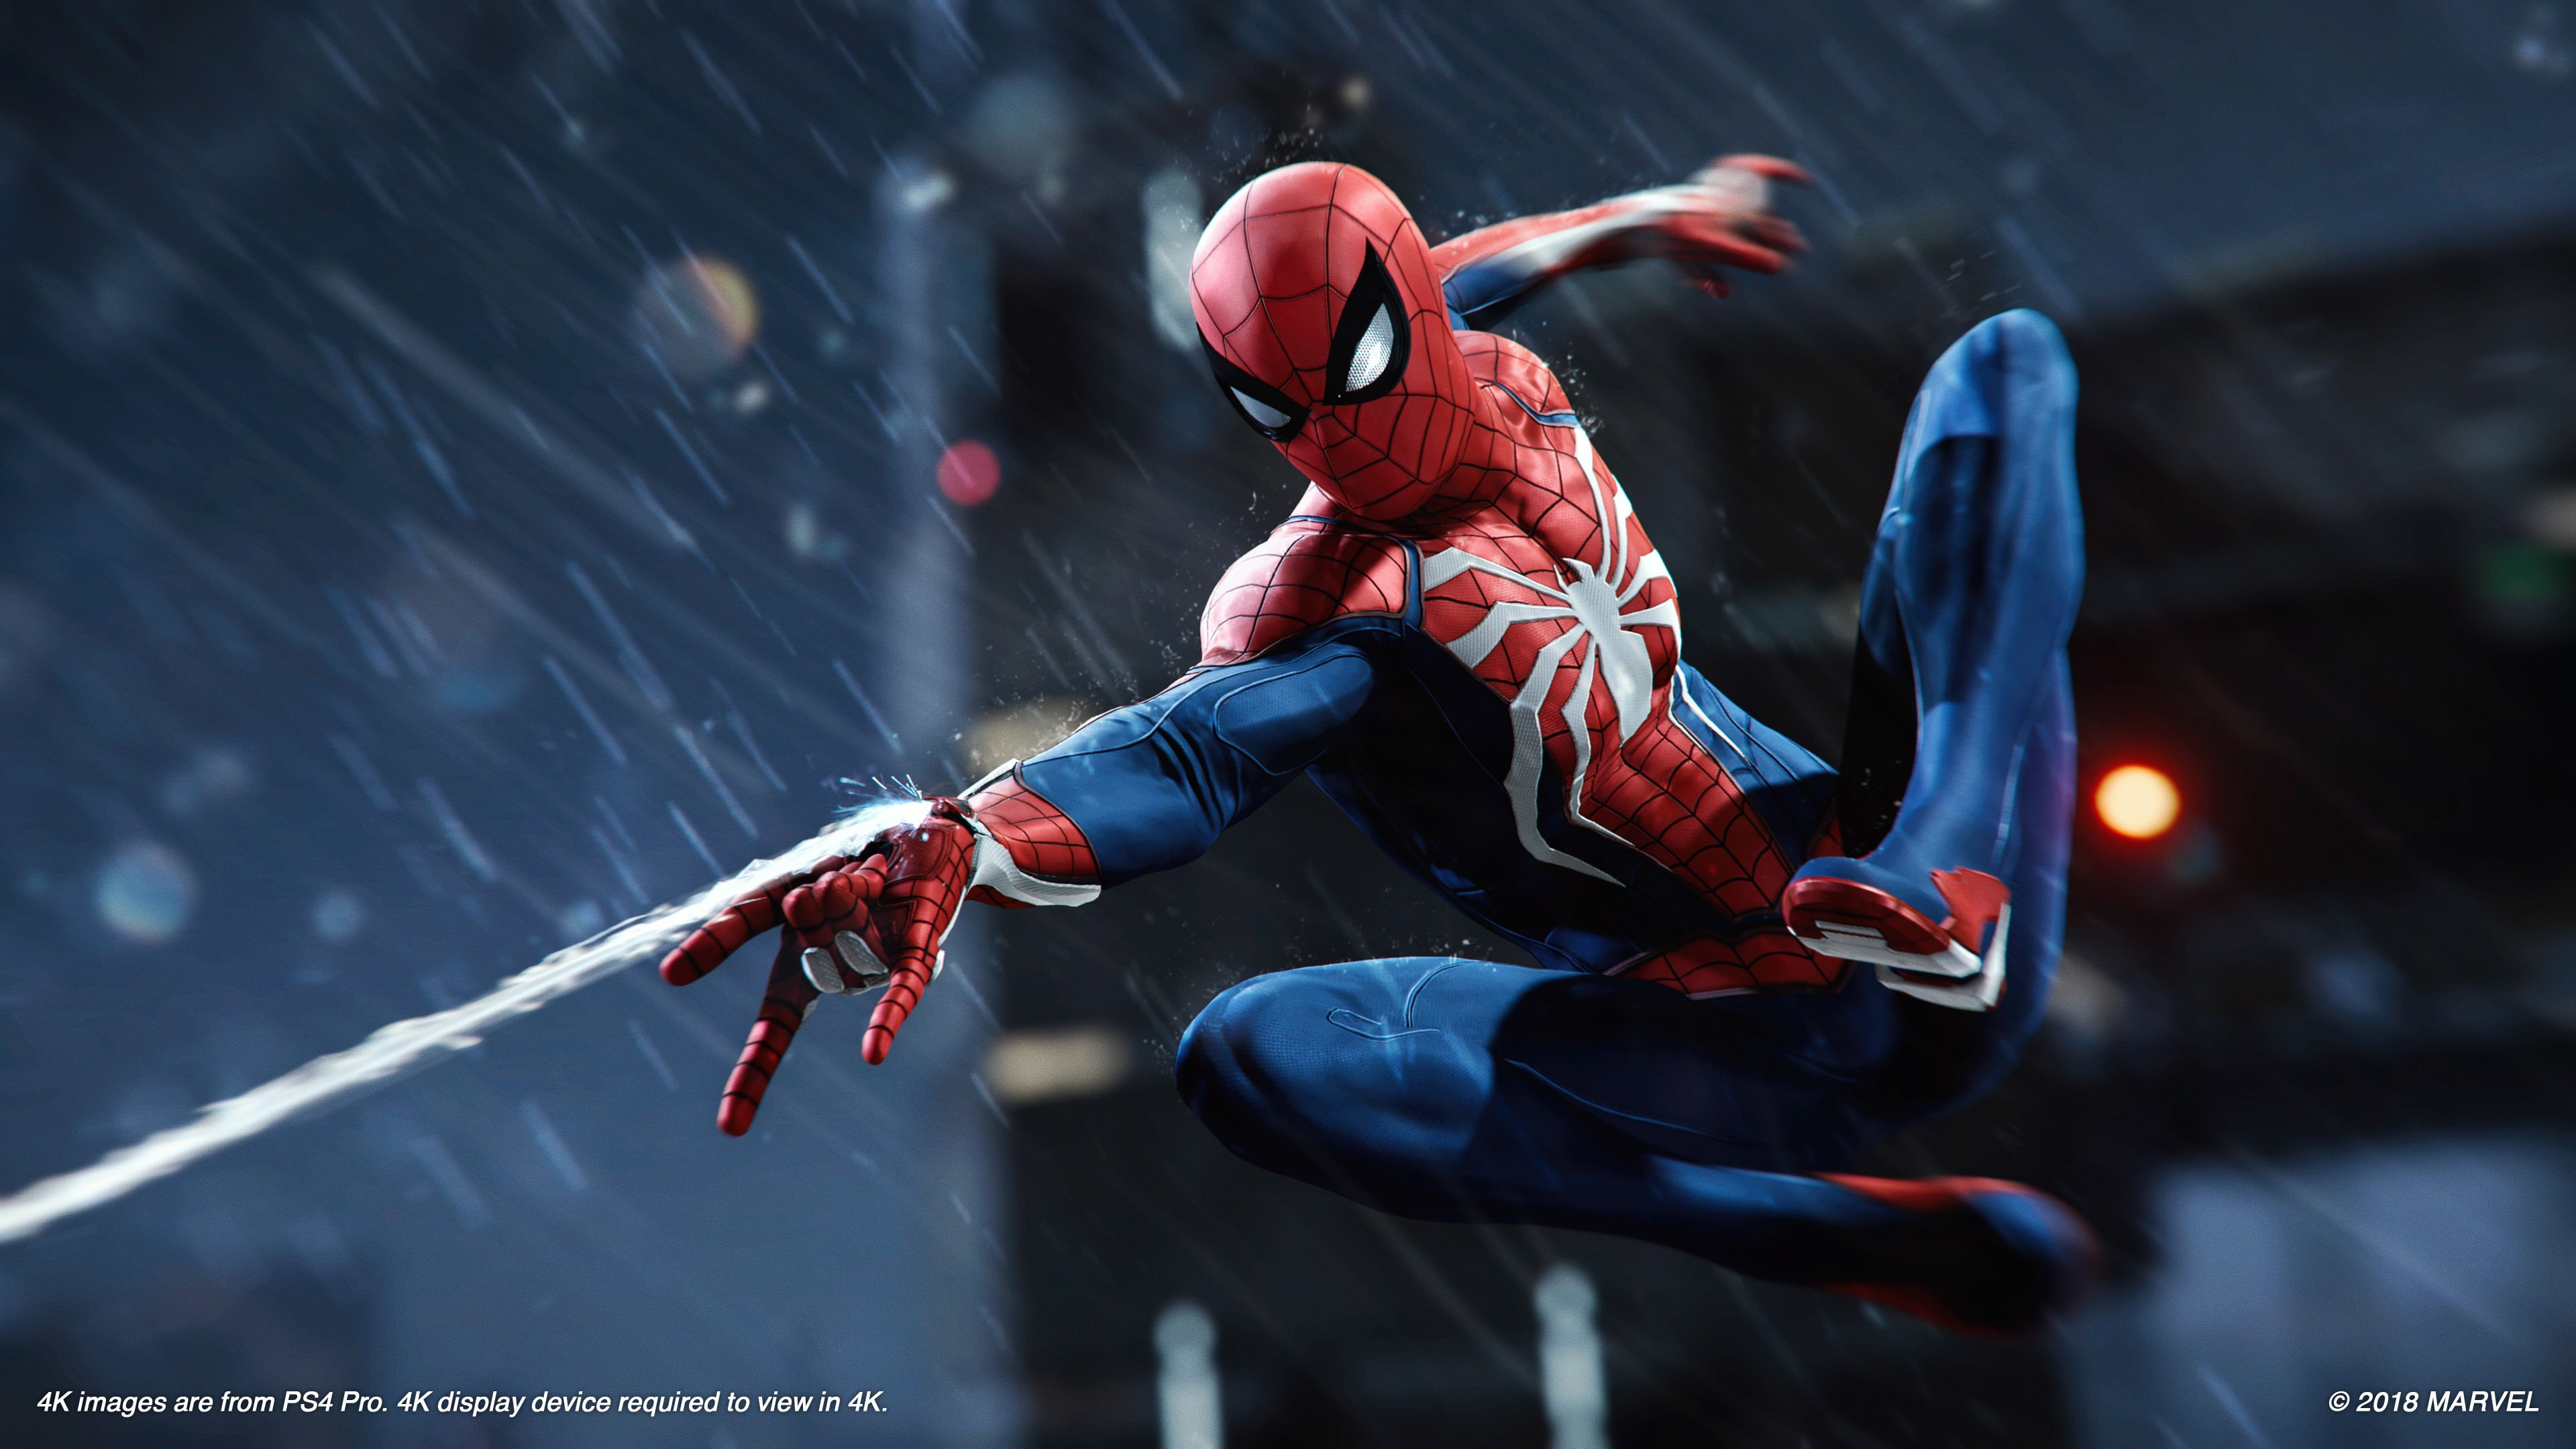 spiderman wallpapers, photos and desktop backgrounds up to 8k